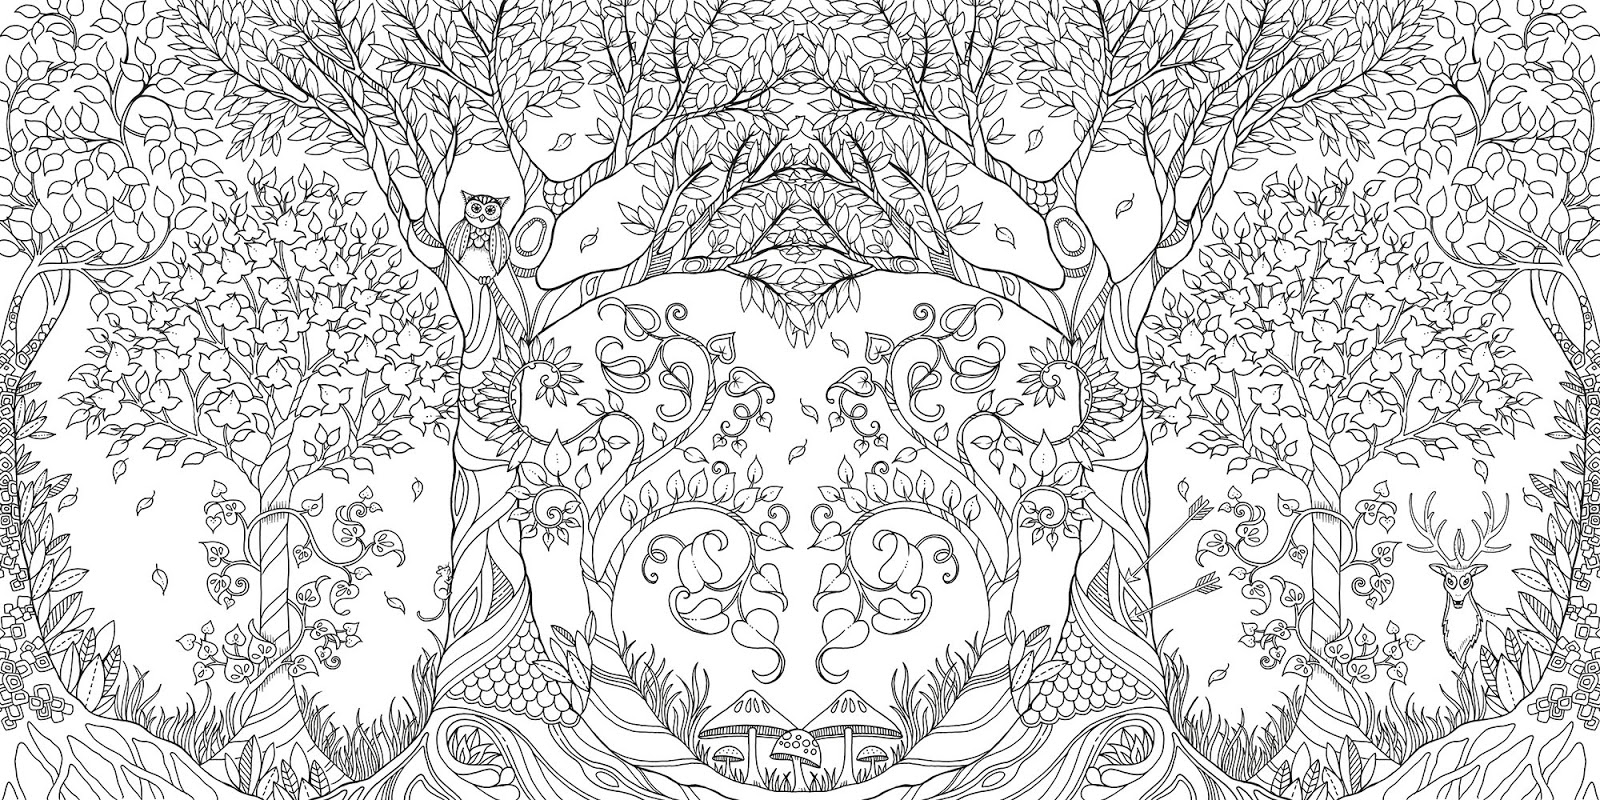 The Very Clumsy Click Beetle Coloring Pages Grown Up Coloring Books Are Here The Backyard Naturalist